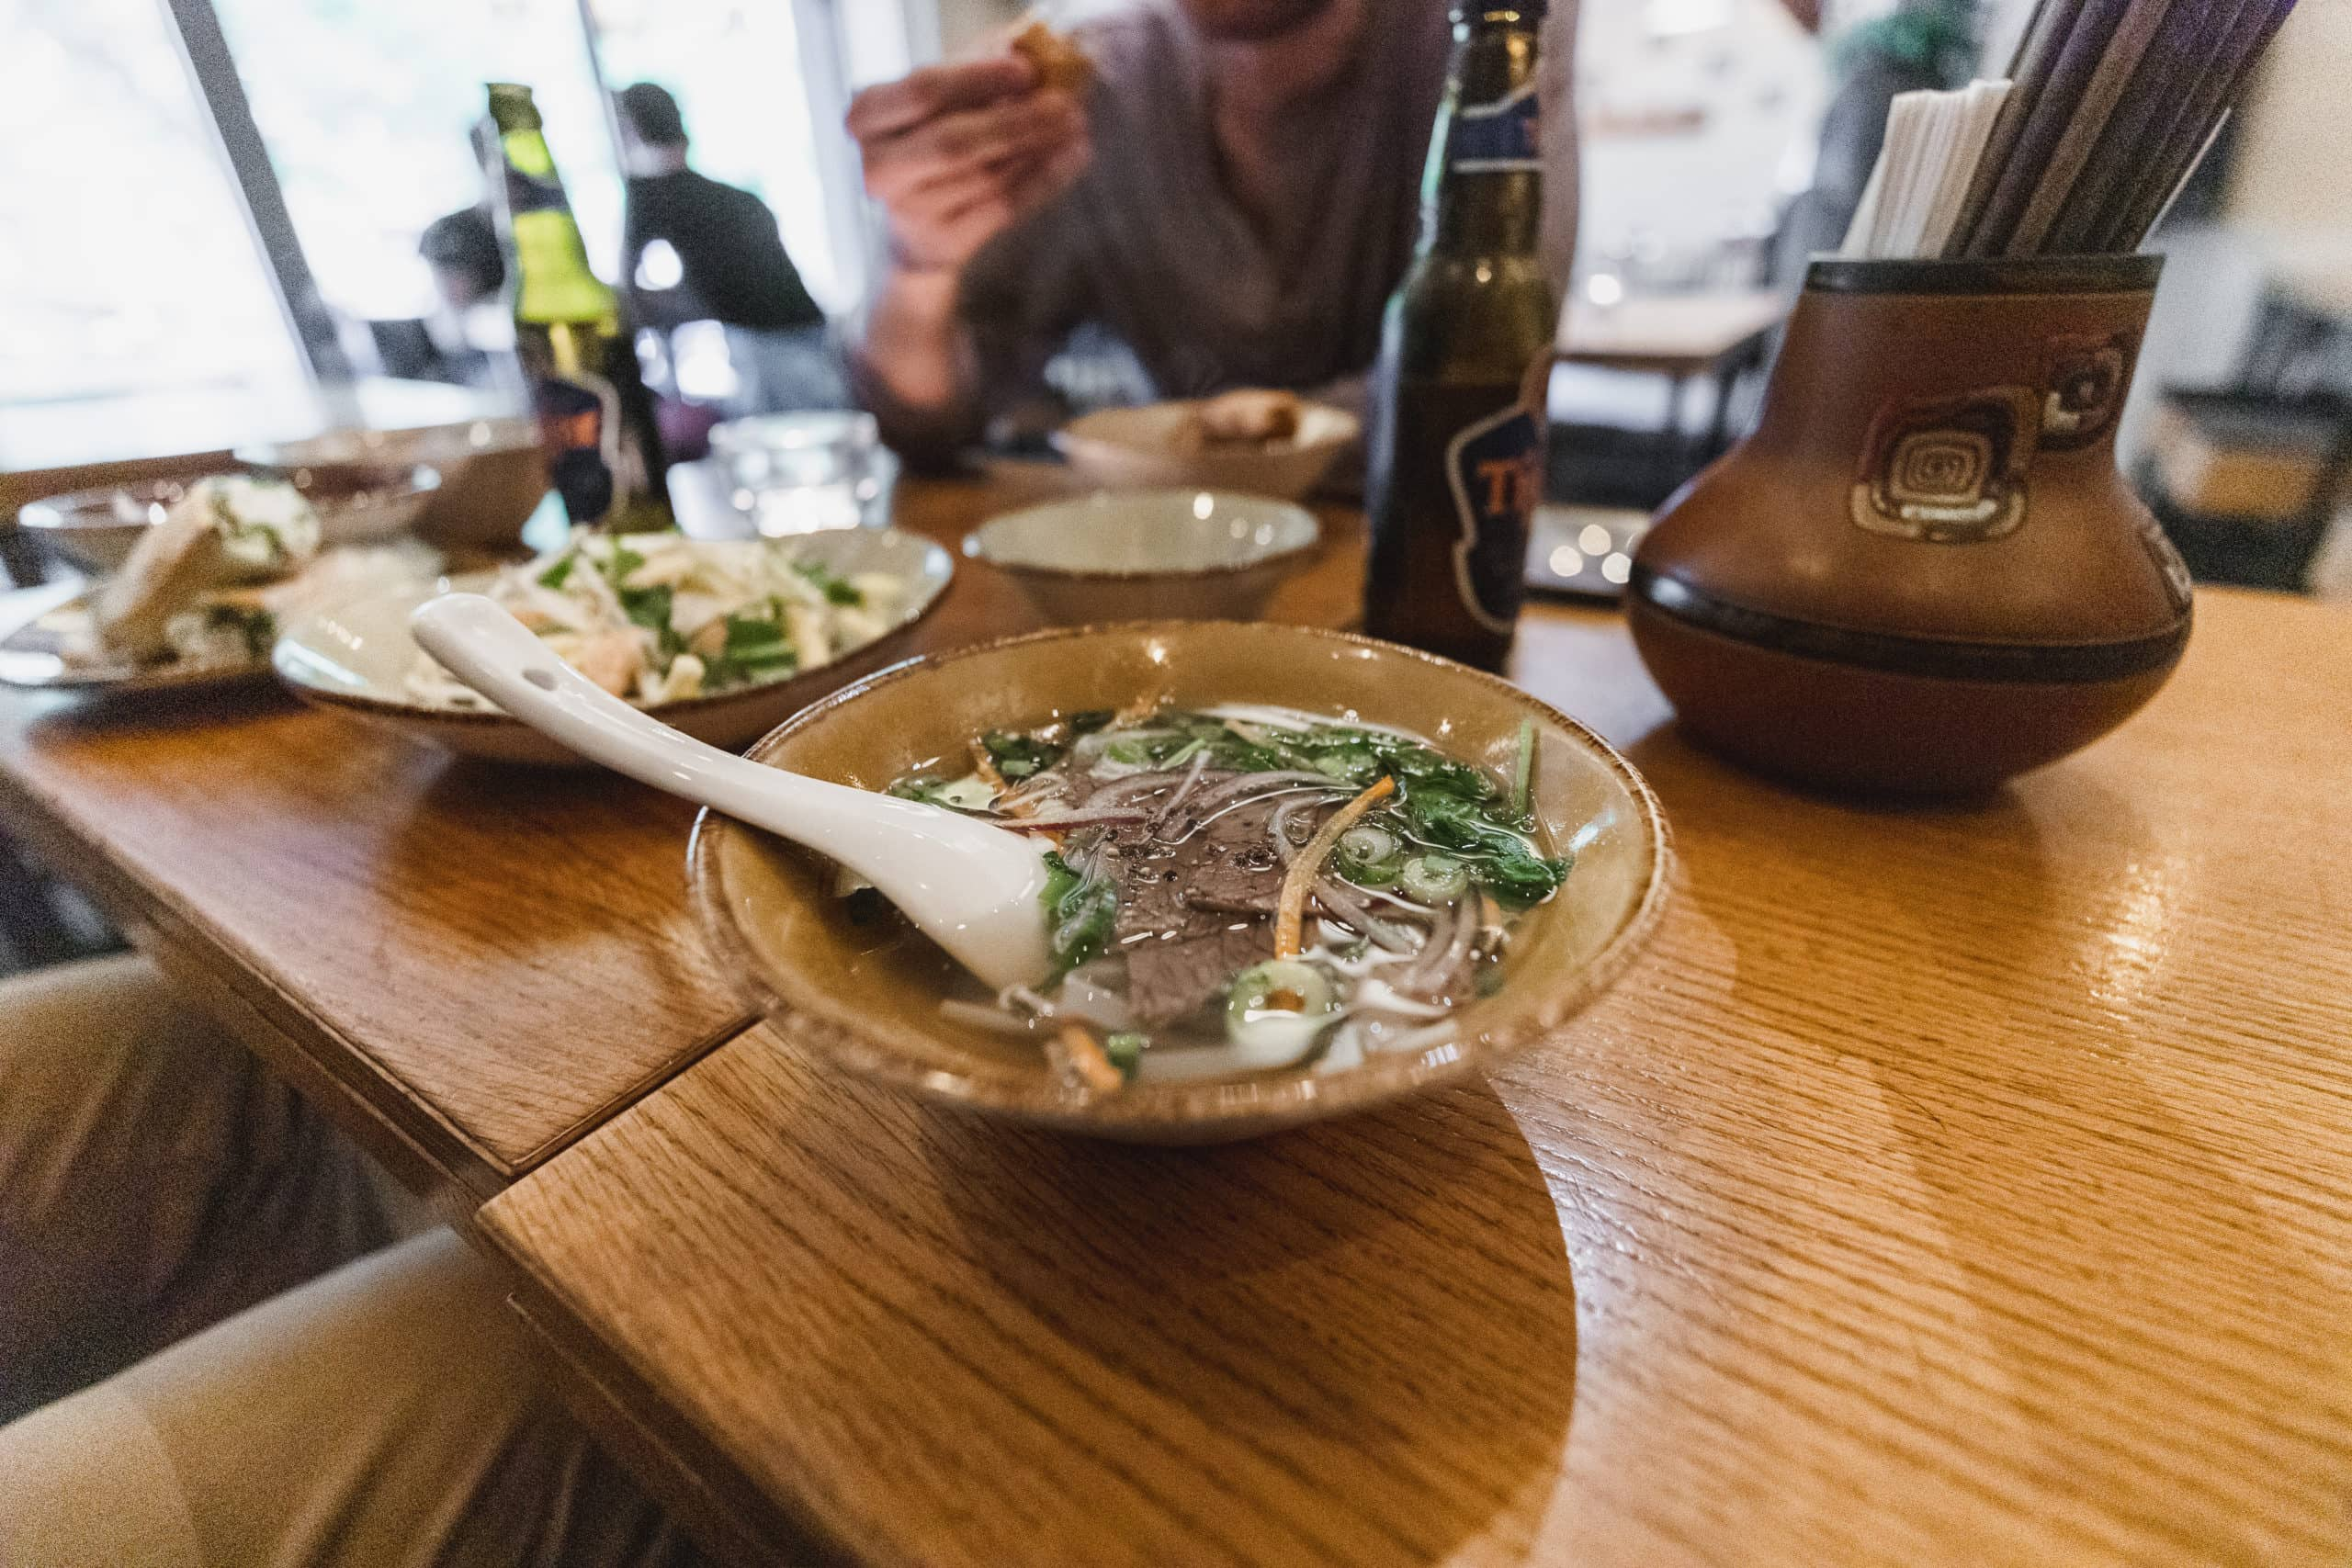 Pho at Vietnam Village is a must visit place if you're wondering where to eat in Berlin.